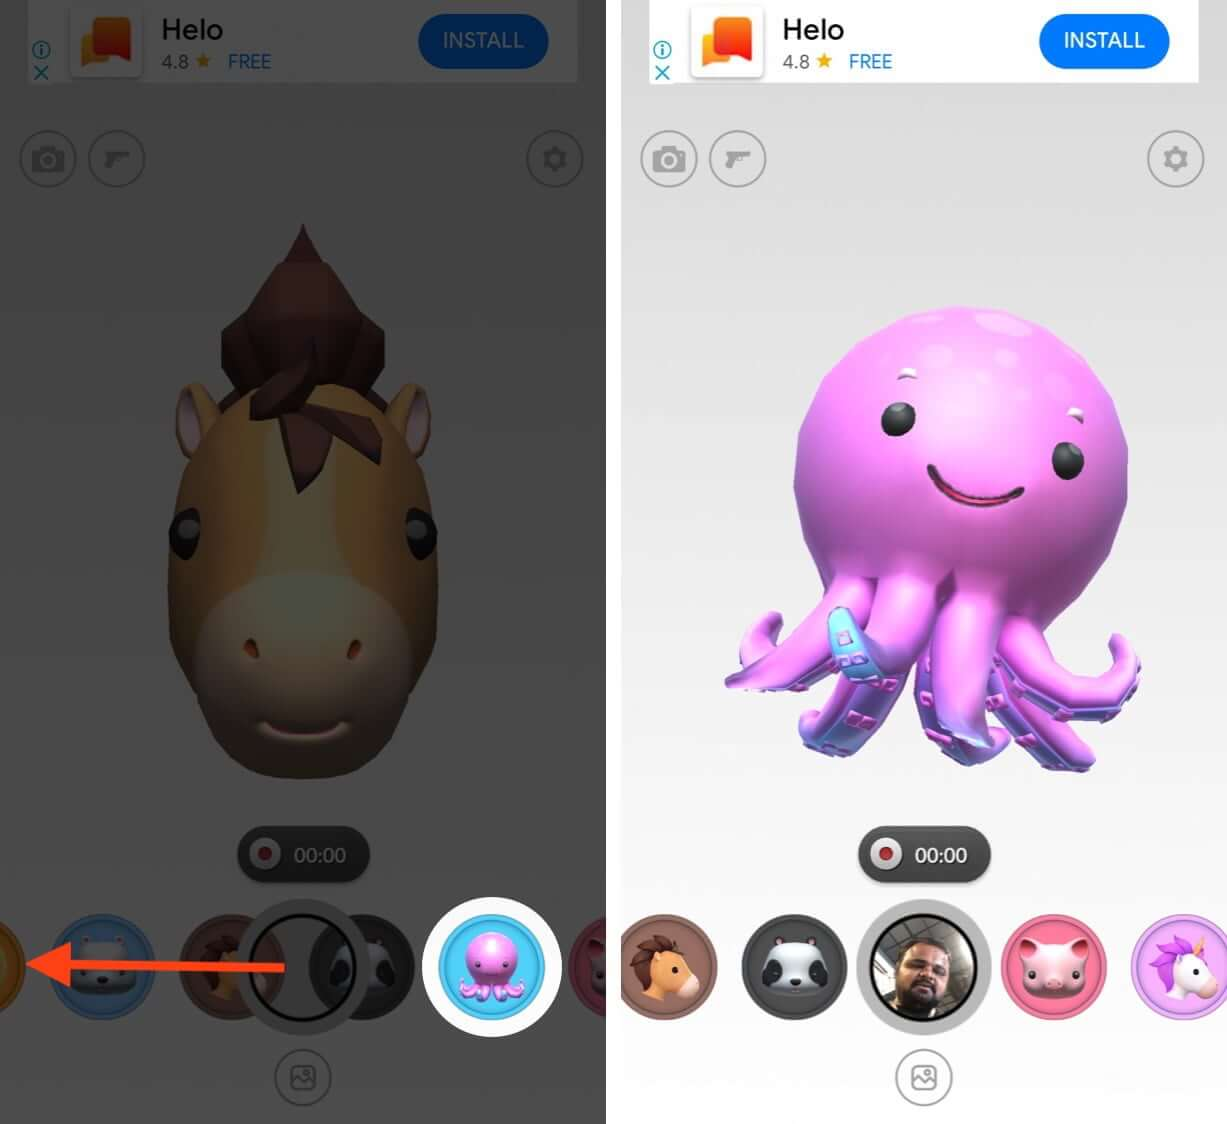 swipe left or right to select animoji